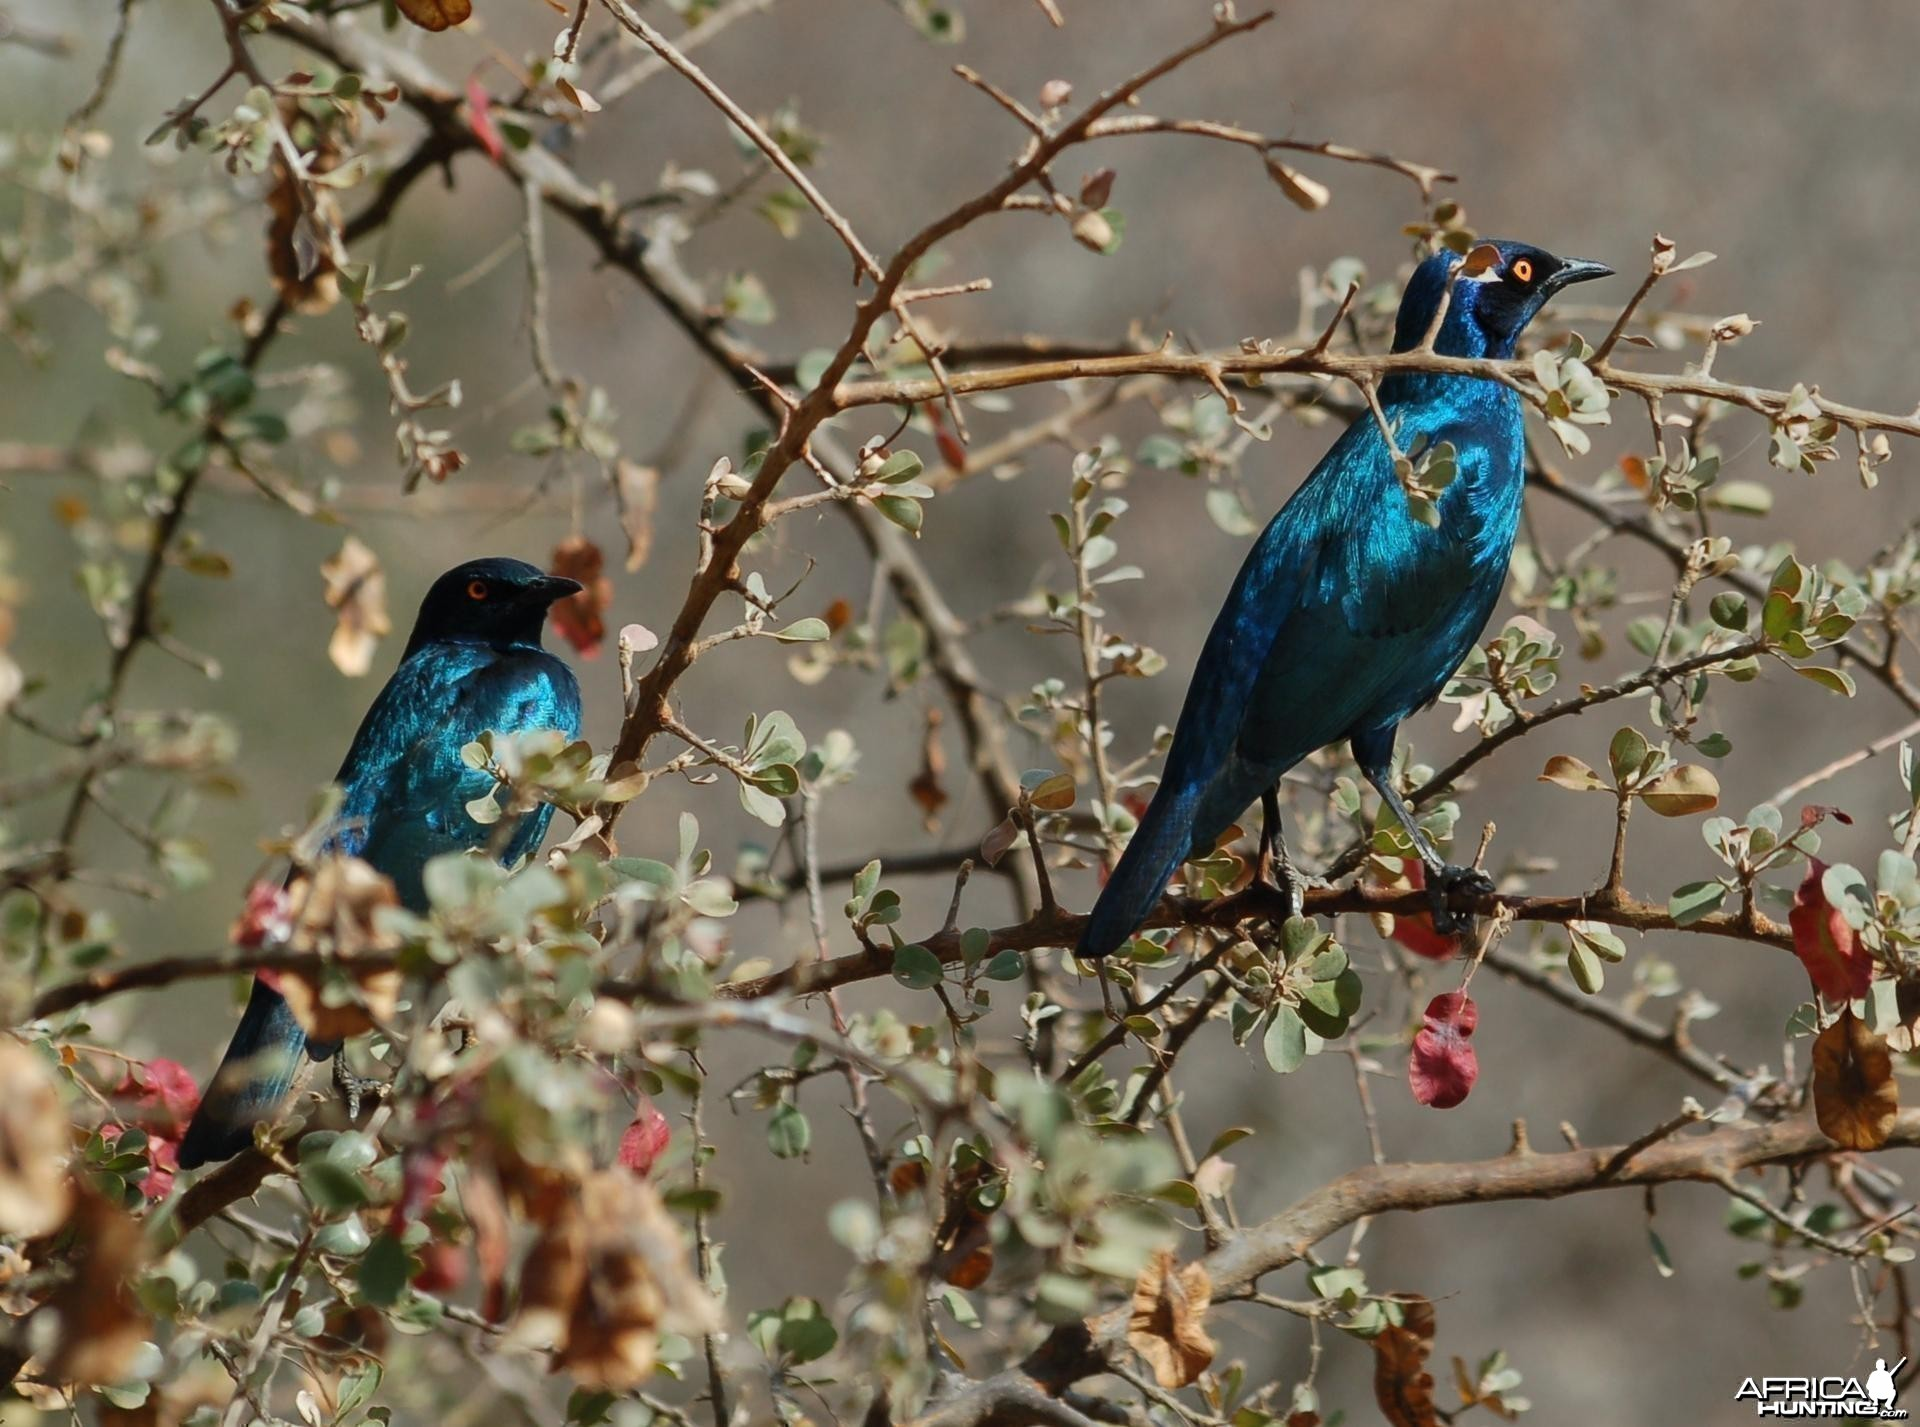 Birds of Africa at Kruger National Park